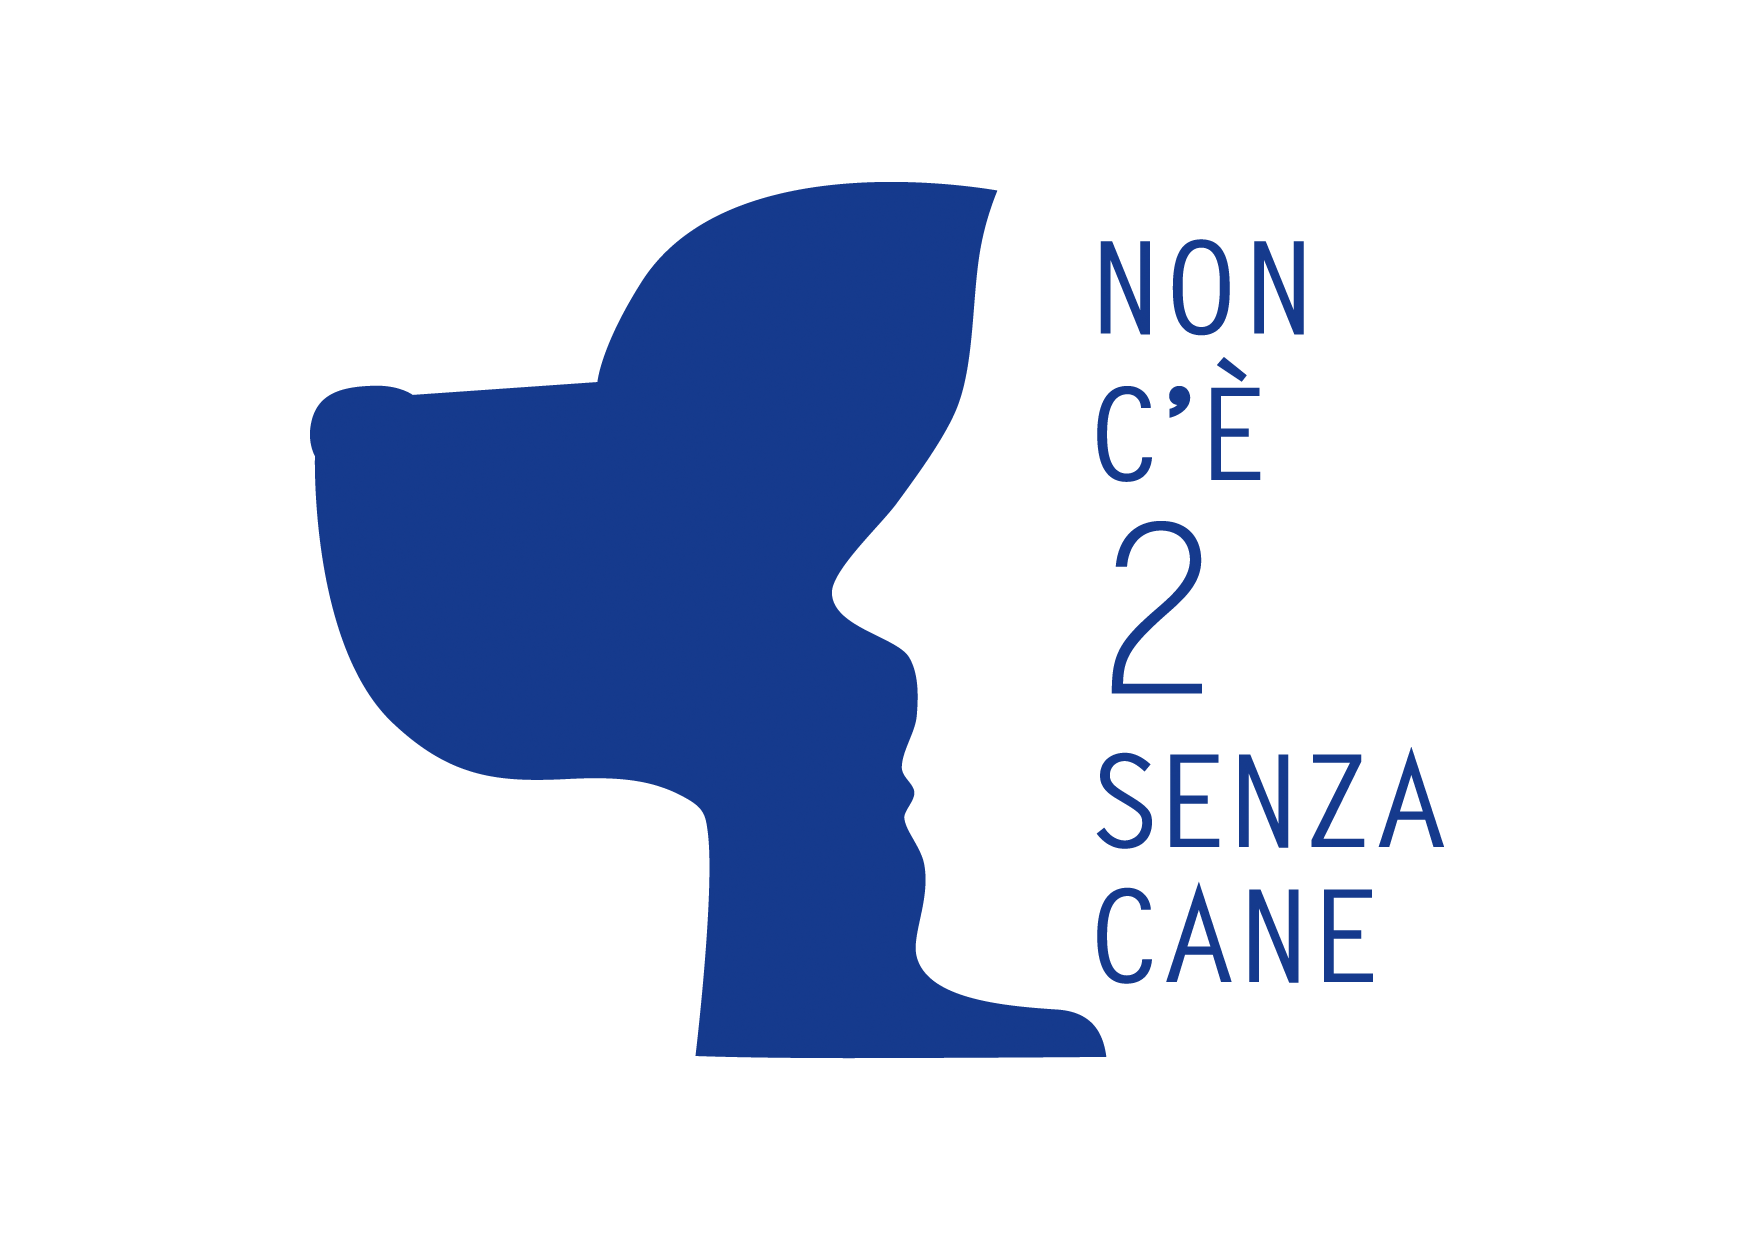 Nonc'2senza canea.s.d. 